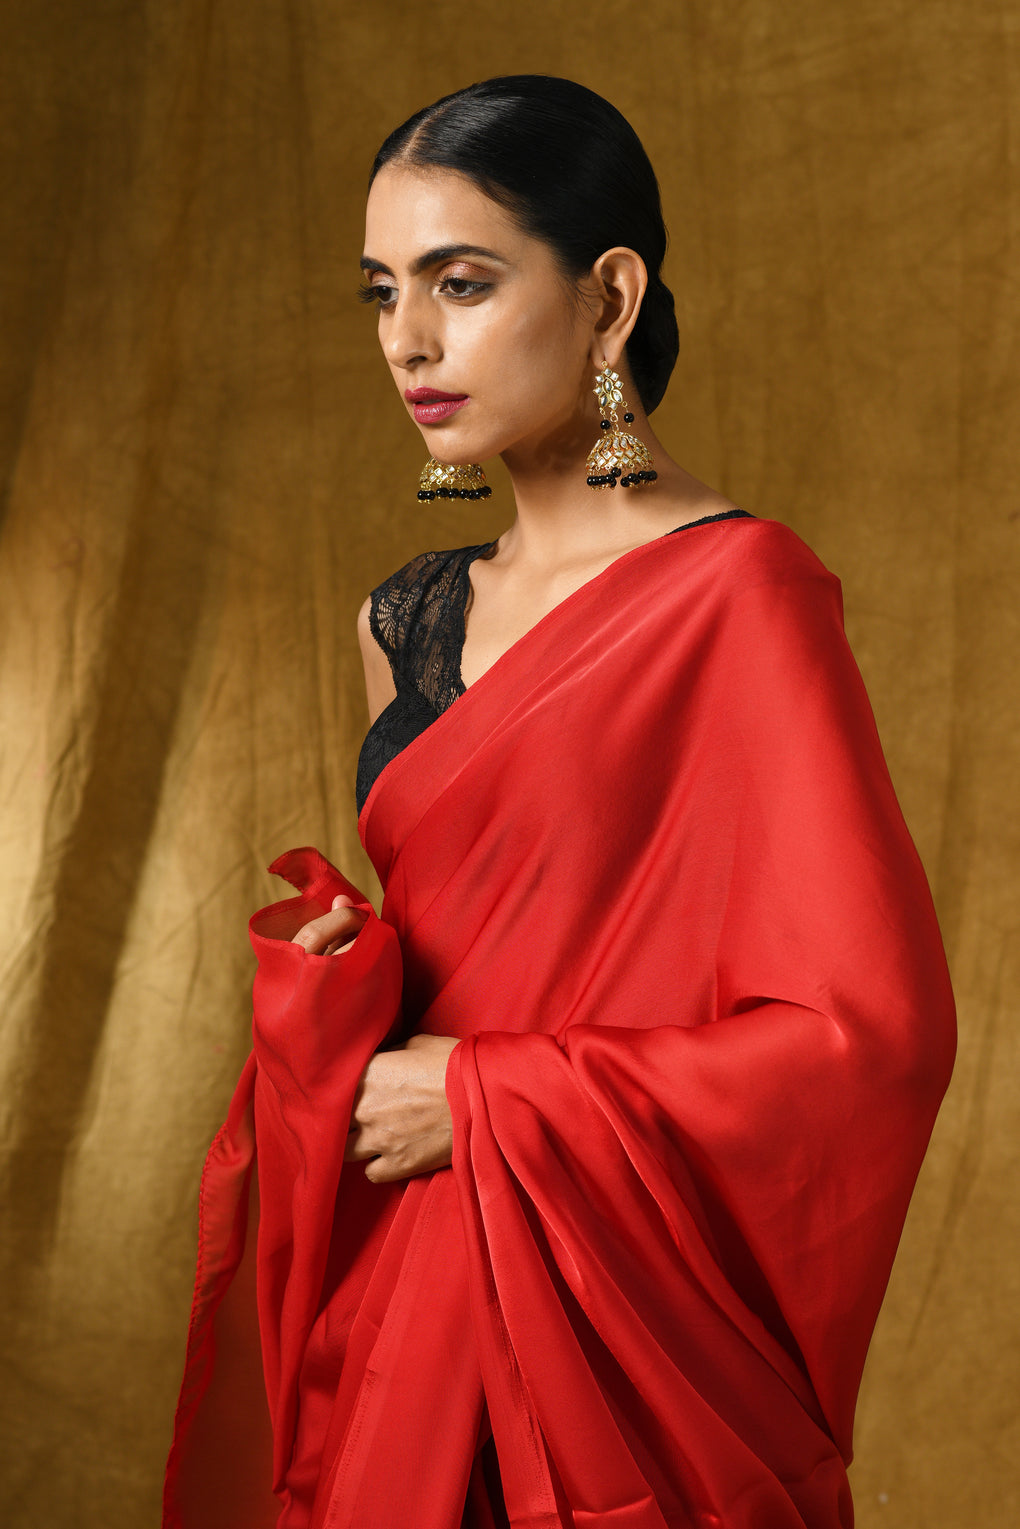 Fiery Red Satin Saree with Gold Pendants